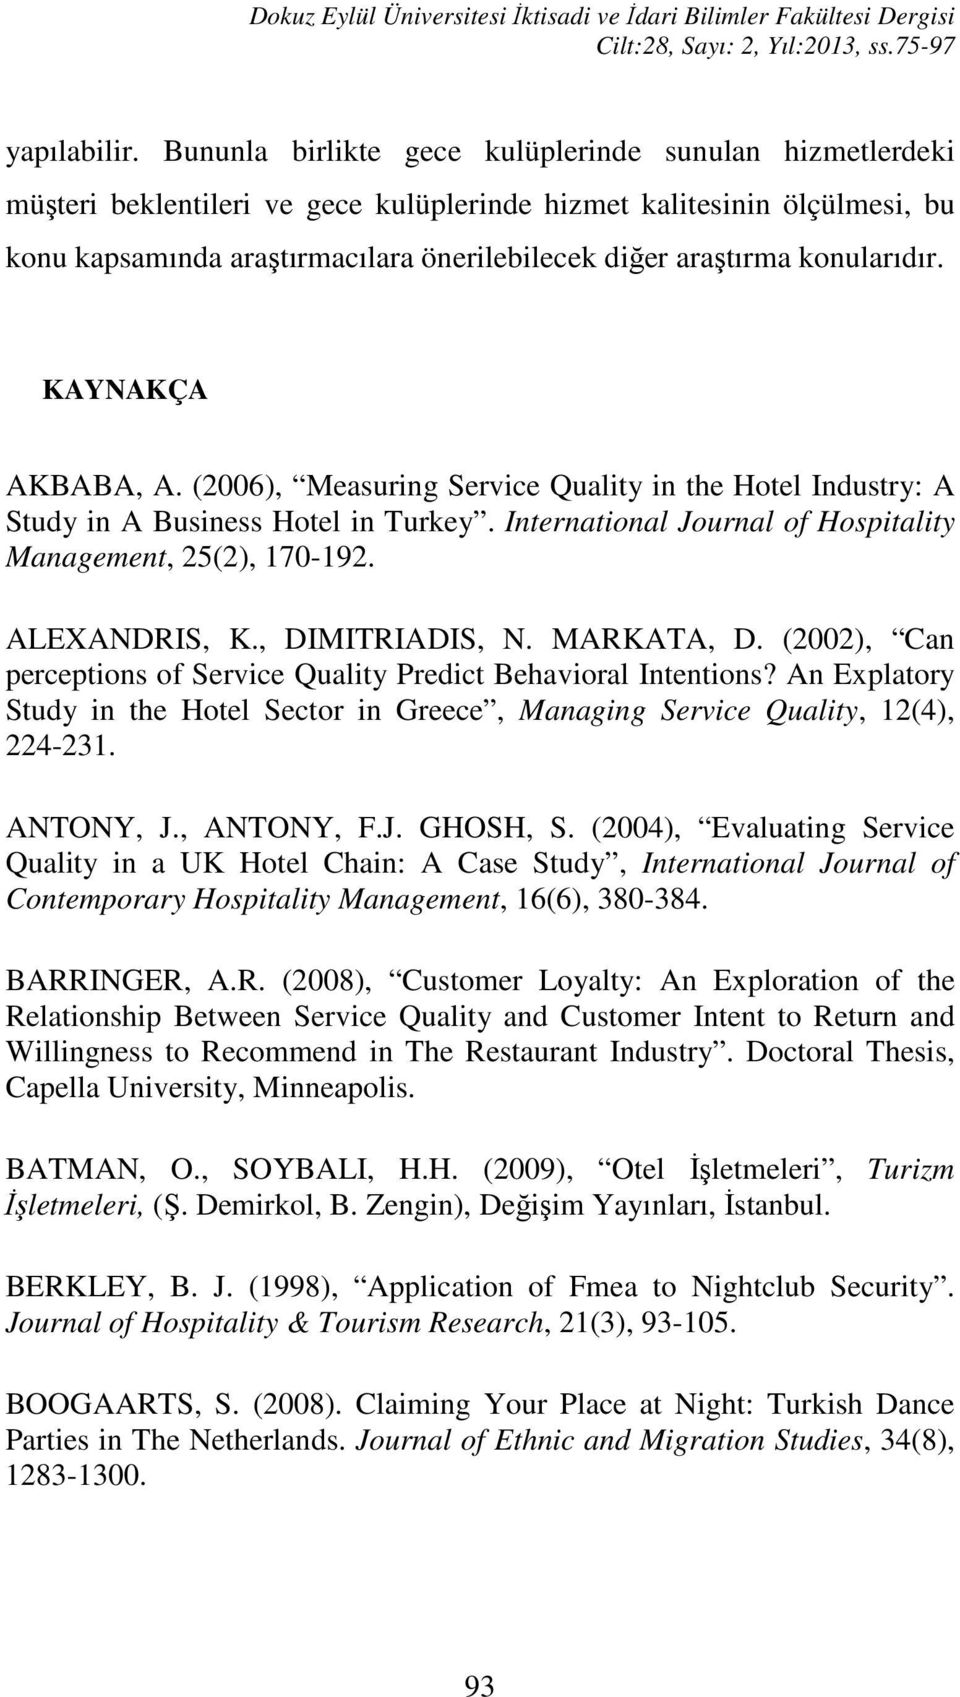 konularıdır. KAYNAKÇA AKBABA, A. (2006), Measuring Service Quality in the Hotel Industry: A Study in A Business Hotel in Turkey. International Journal of Hospitality Management, 25(2), 170-192.